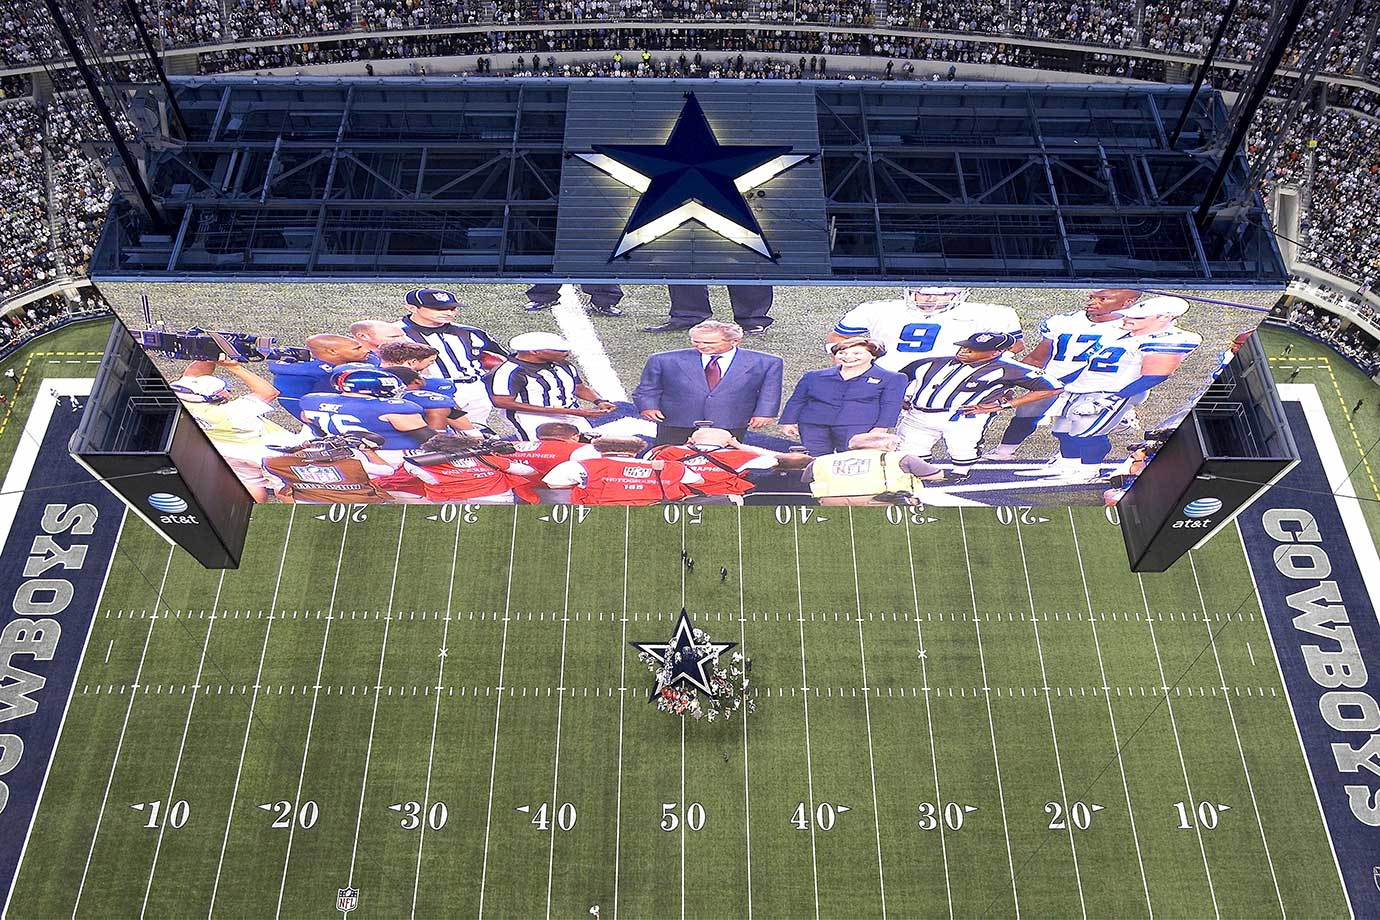 The view from inside Cowboys Stadium before